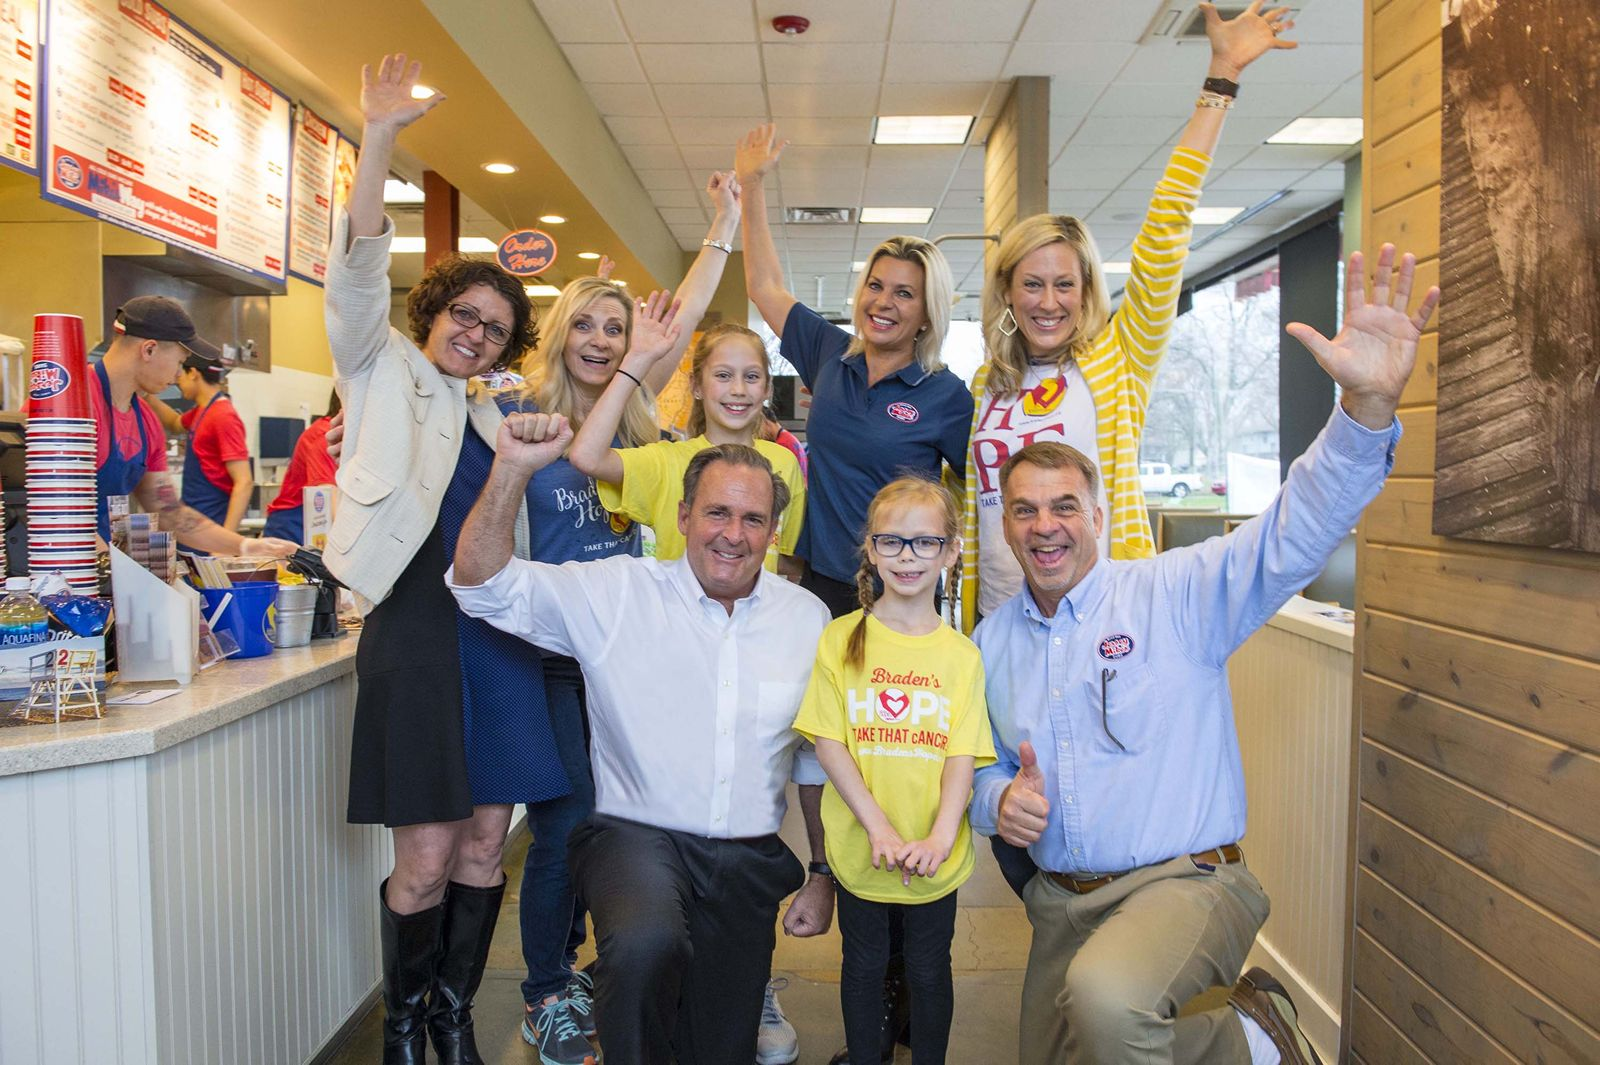 Jersey Mike's Founder & CEO Peter Cancro (kneeling, left) celebrated the company's 8th Annual Day of Giving with Callyn Stanley (front center) and Area Director Mike Spiegel at the Olathe, Kansas, restaurant. They were joined by (back row, from left) Shelia Montgomery, Deliece Hofen, founder of local charity partner Braden's Hope, Taylor Stanley, Tatiana Voevodina Cancro, and Kim Stanley.